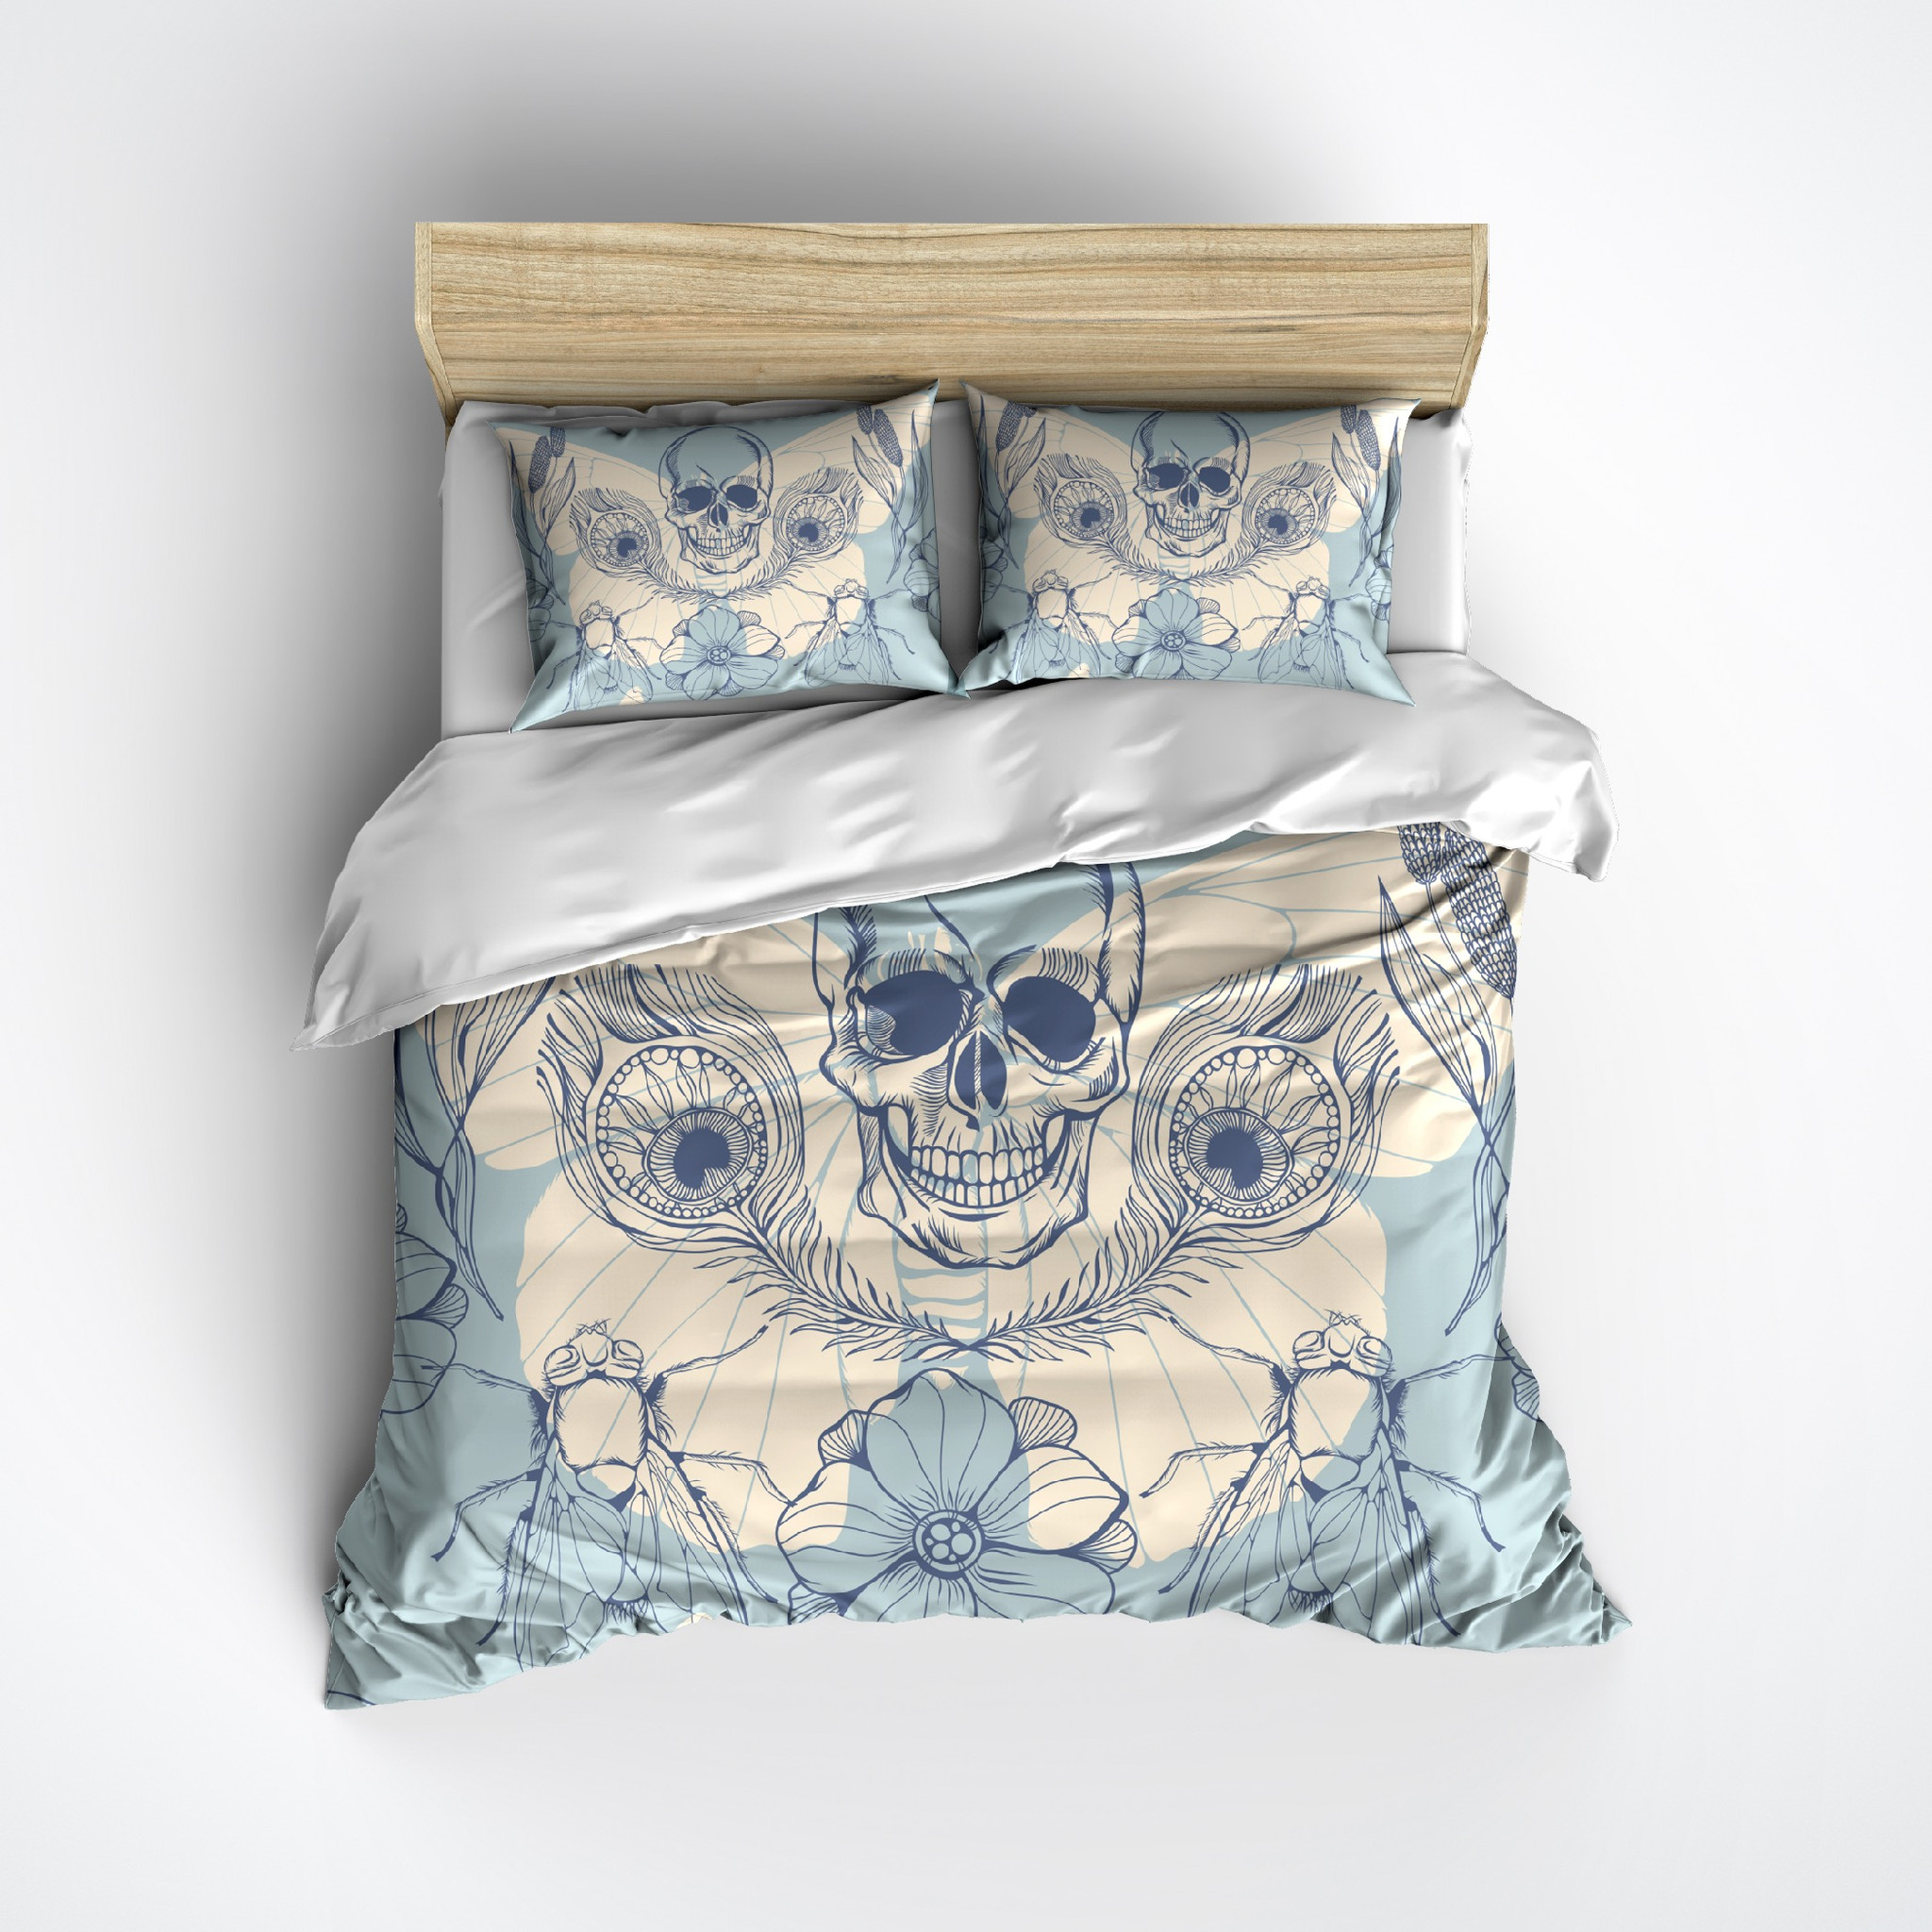 Peacock Bedding | Peacock Alley Coverlet Discontinued | Peacock Bedding Bed Bath and Beyond